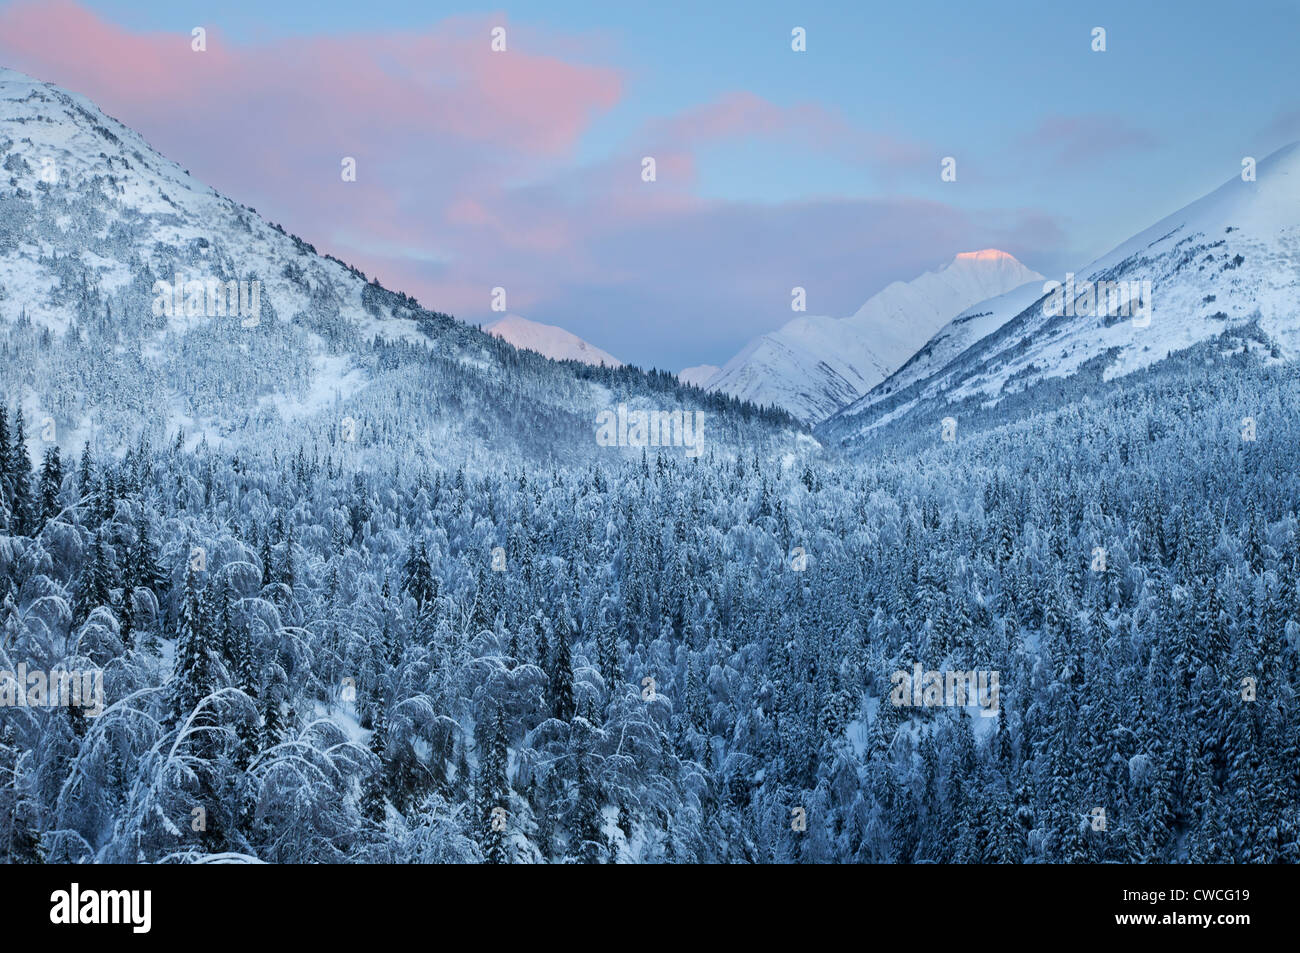 Snowy trees at sunset, Chugach National Forest, Alaska. - Stock Image